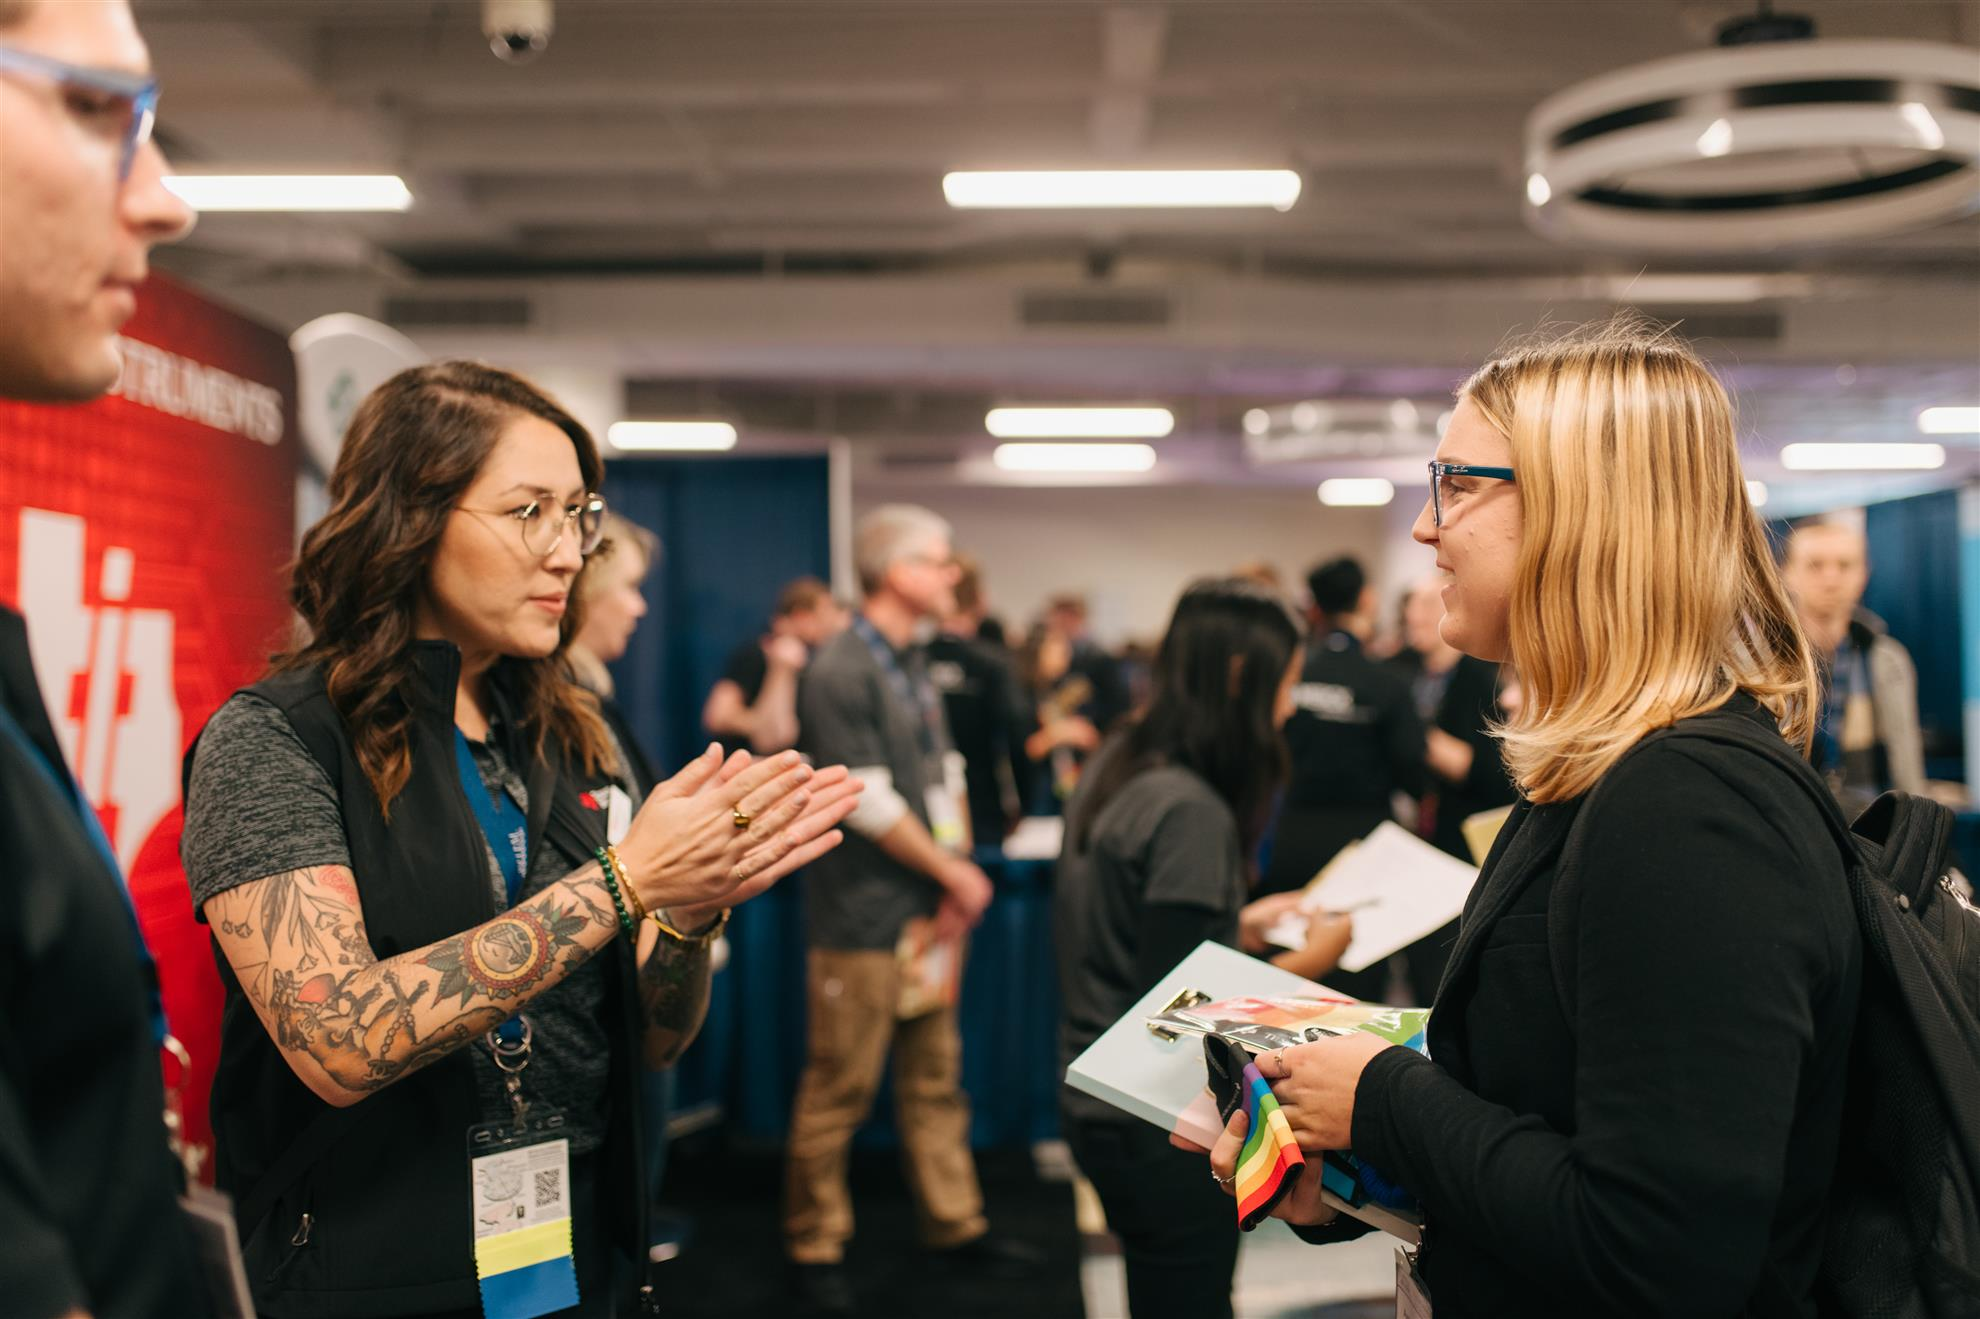 Conference 2019 - Two people talking to each other